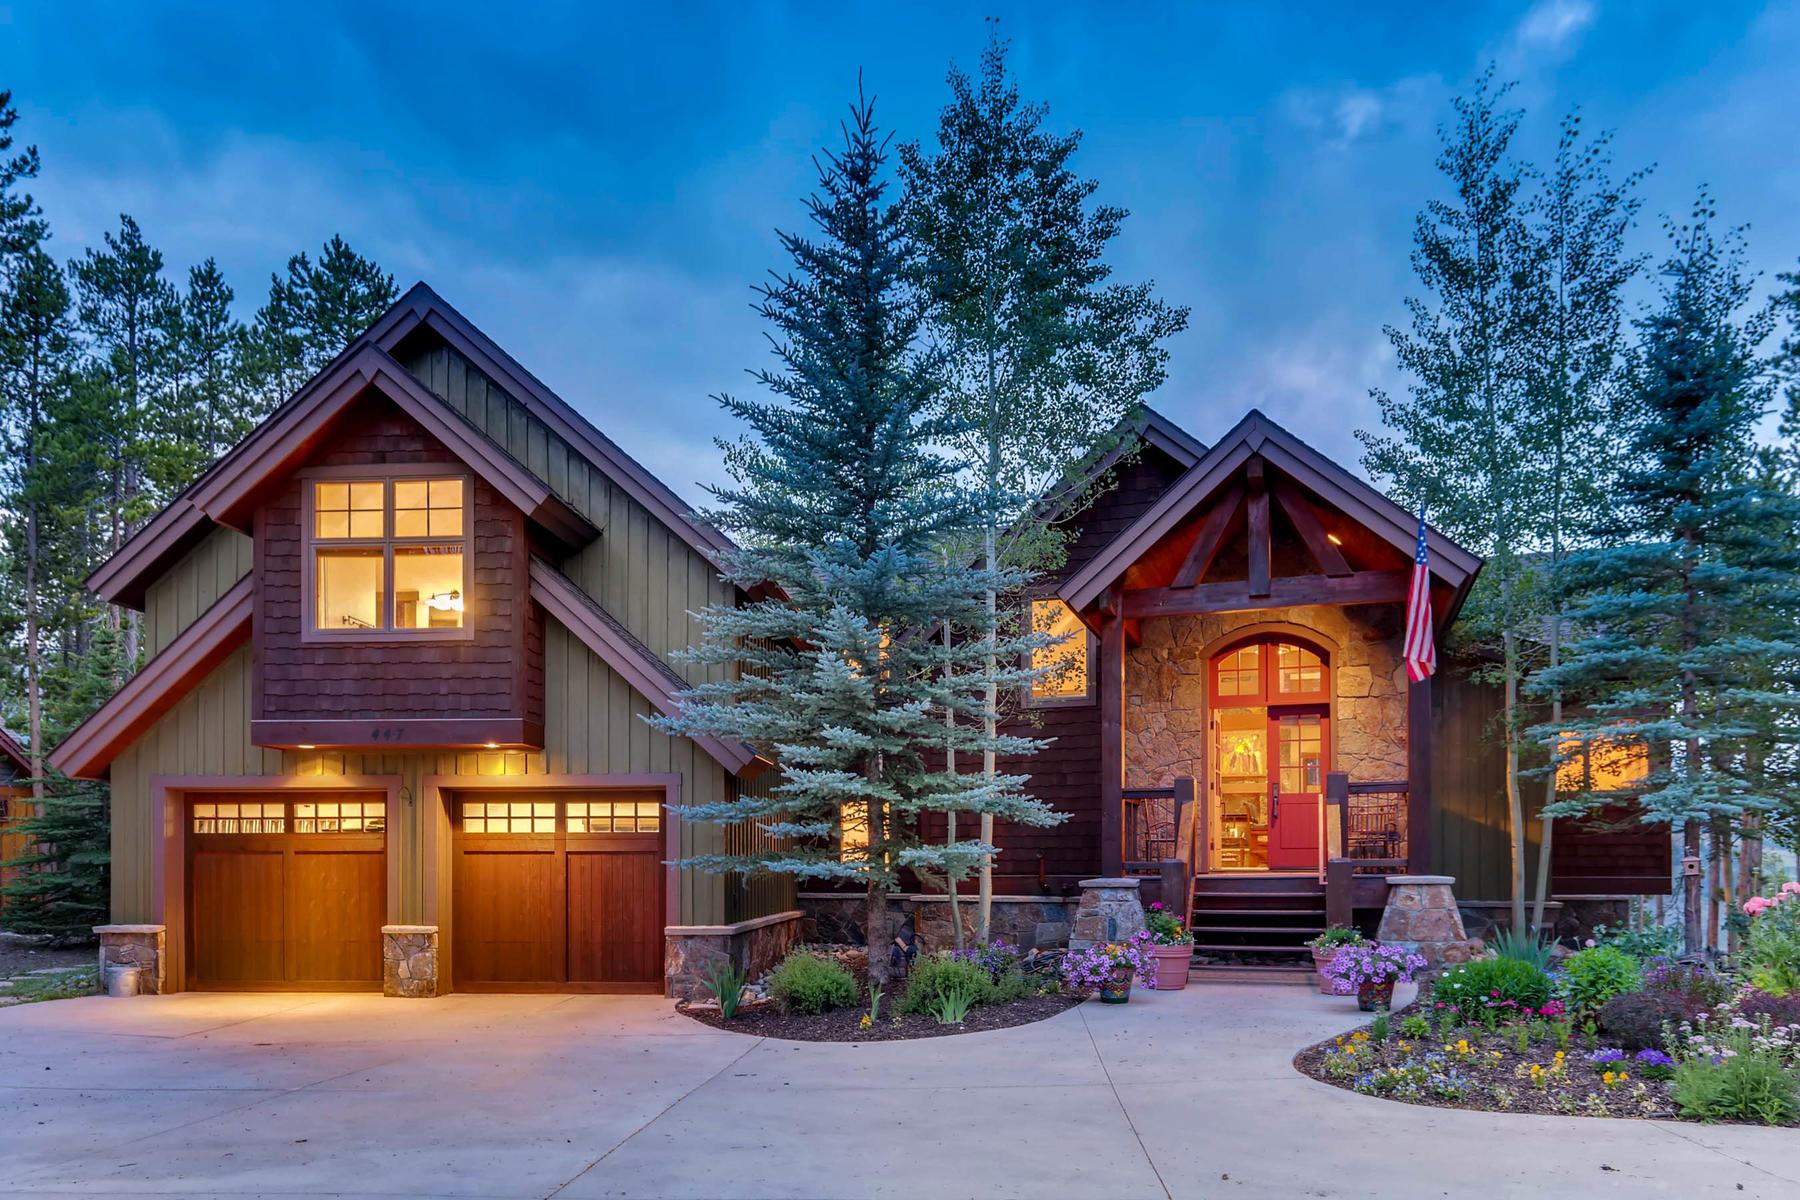 Single Family Home for Active at 447 Silver Circle 447 Silver Circle Breckenridge, Colorado 80424 United States